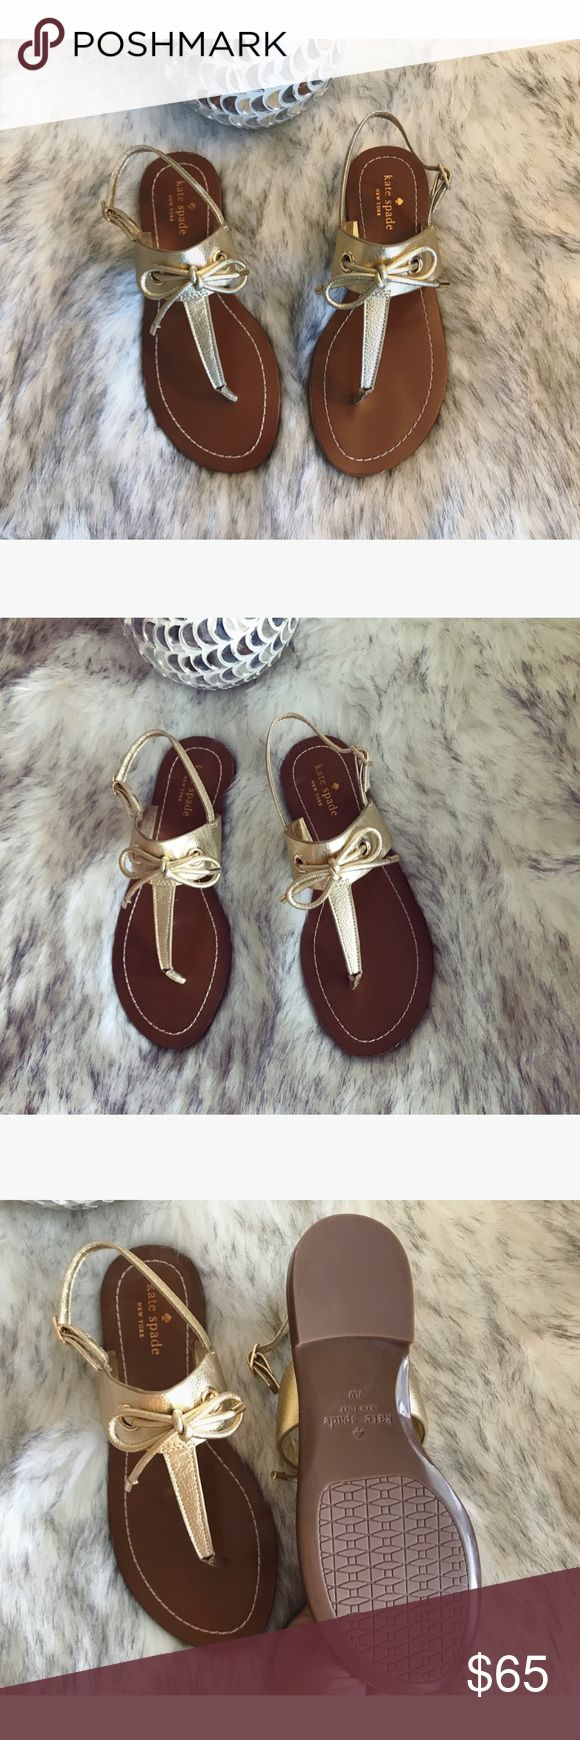 FINAL PRICE 🎀 Gorgeous Kate ♠️ Spade sandals 🎀 💝 Gorgeous Kate Spade sandals in gold, size 7.5 new never worn 💝 kate spade Shoes Sandals